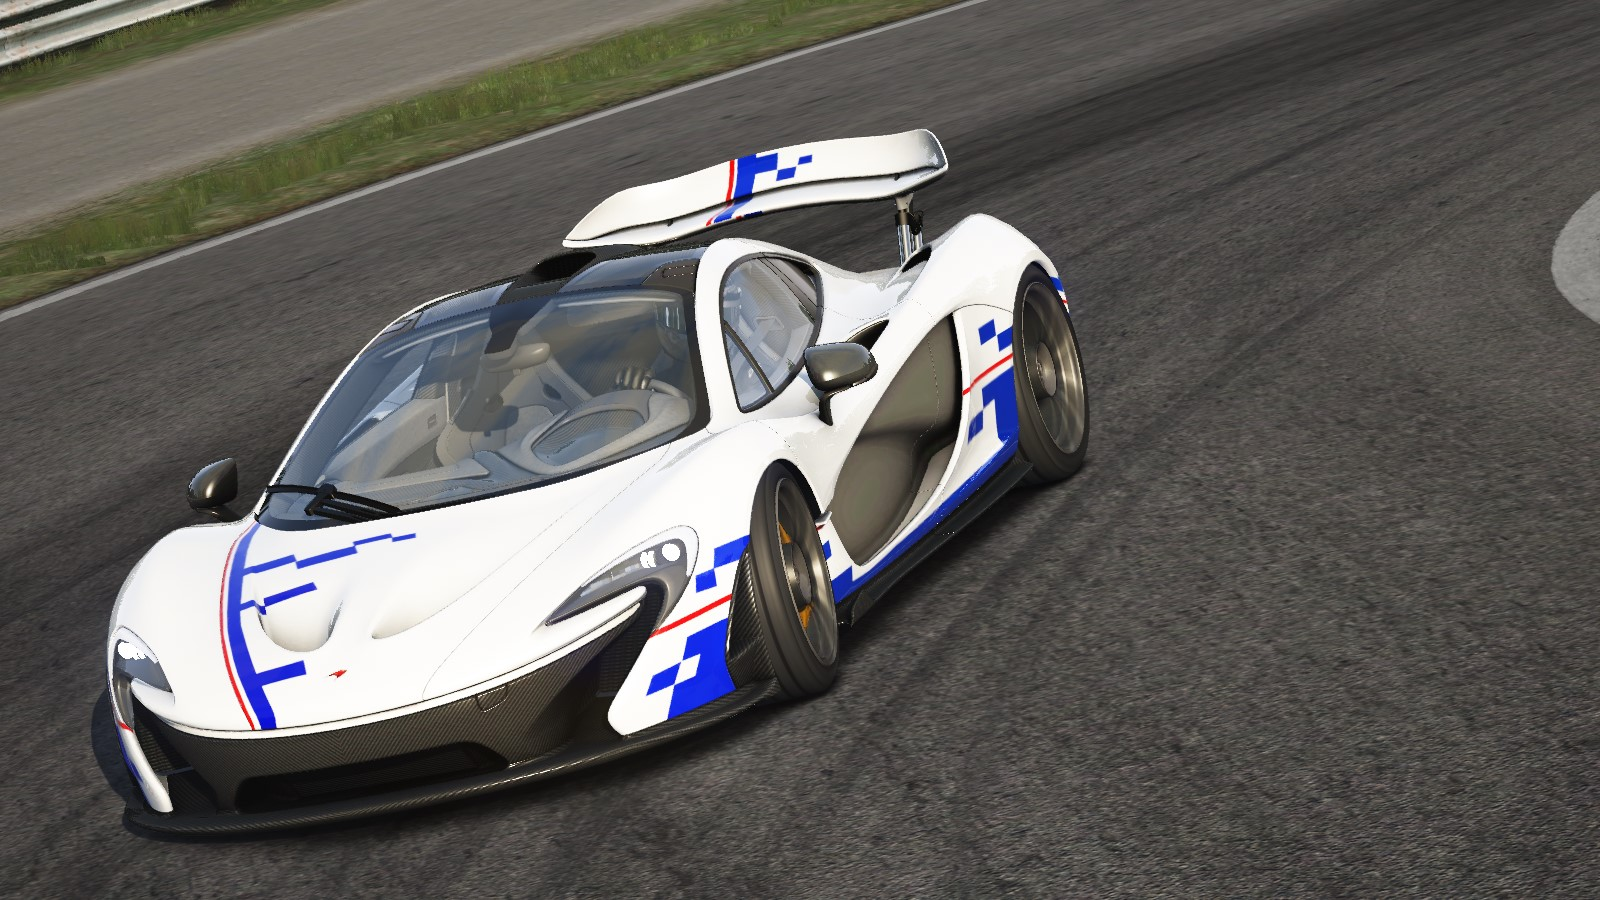 Screenshot_ks_mclaren_p1_monza_8-9-115-17-34-38.jpg